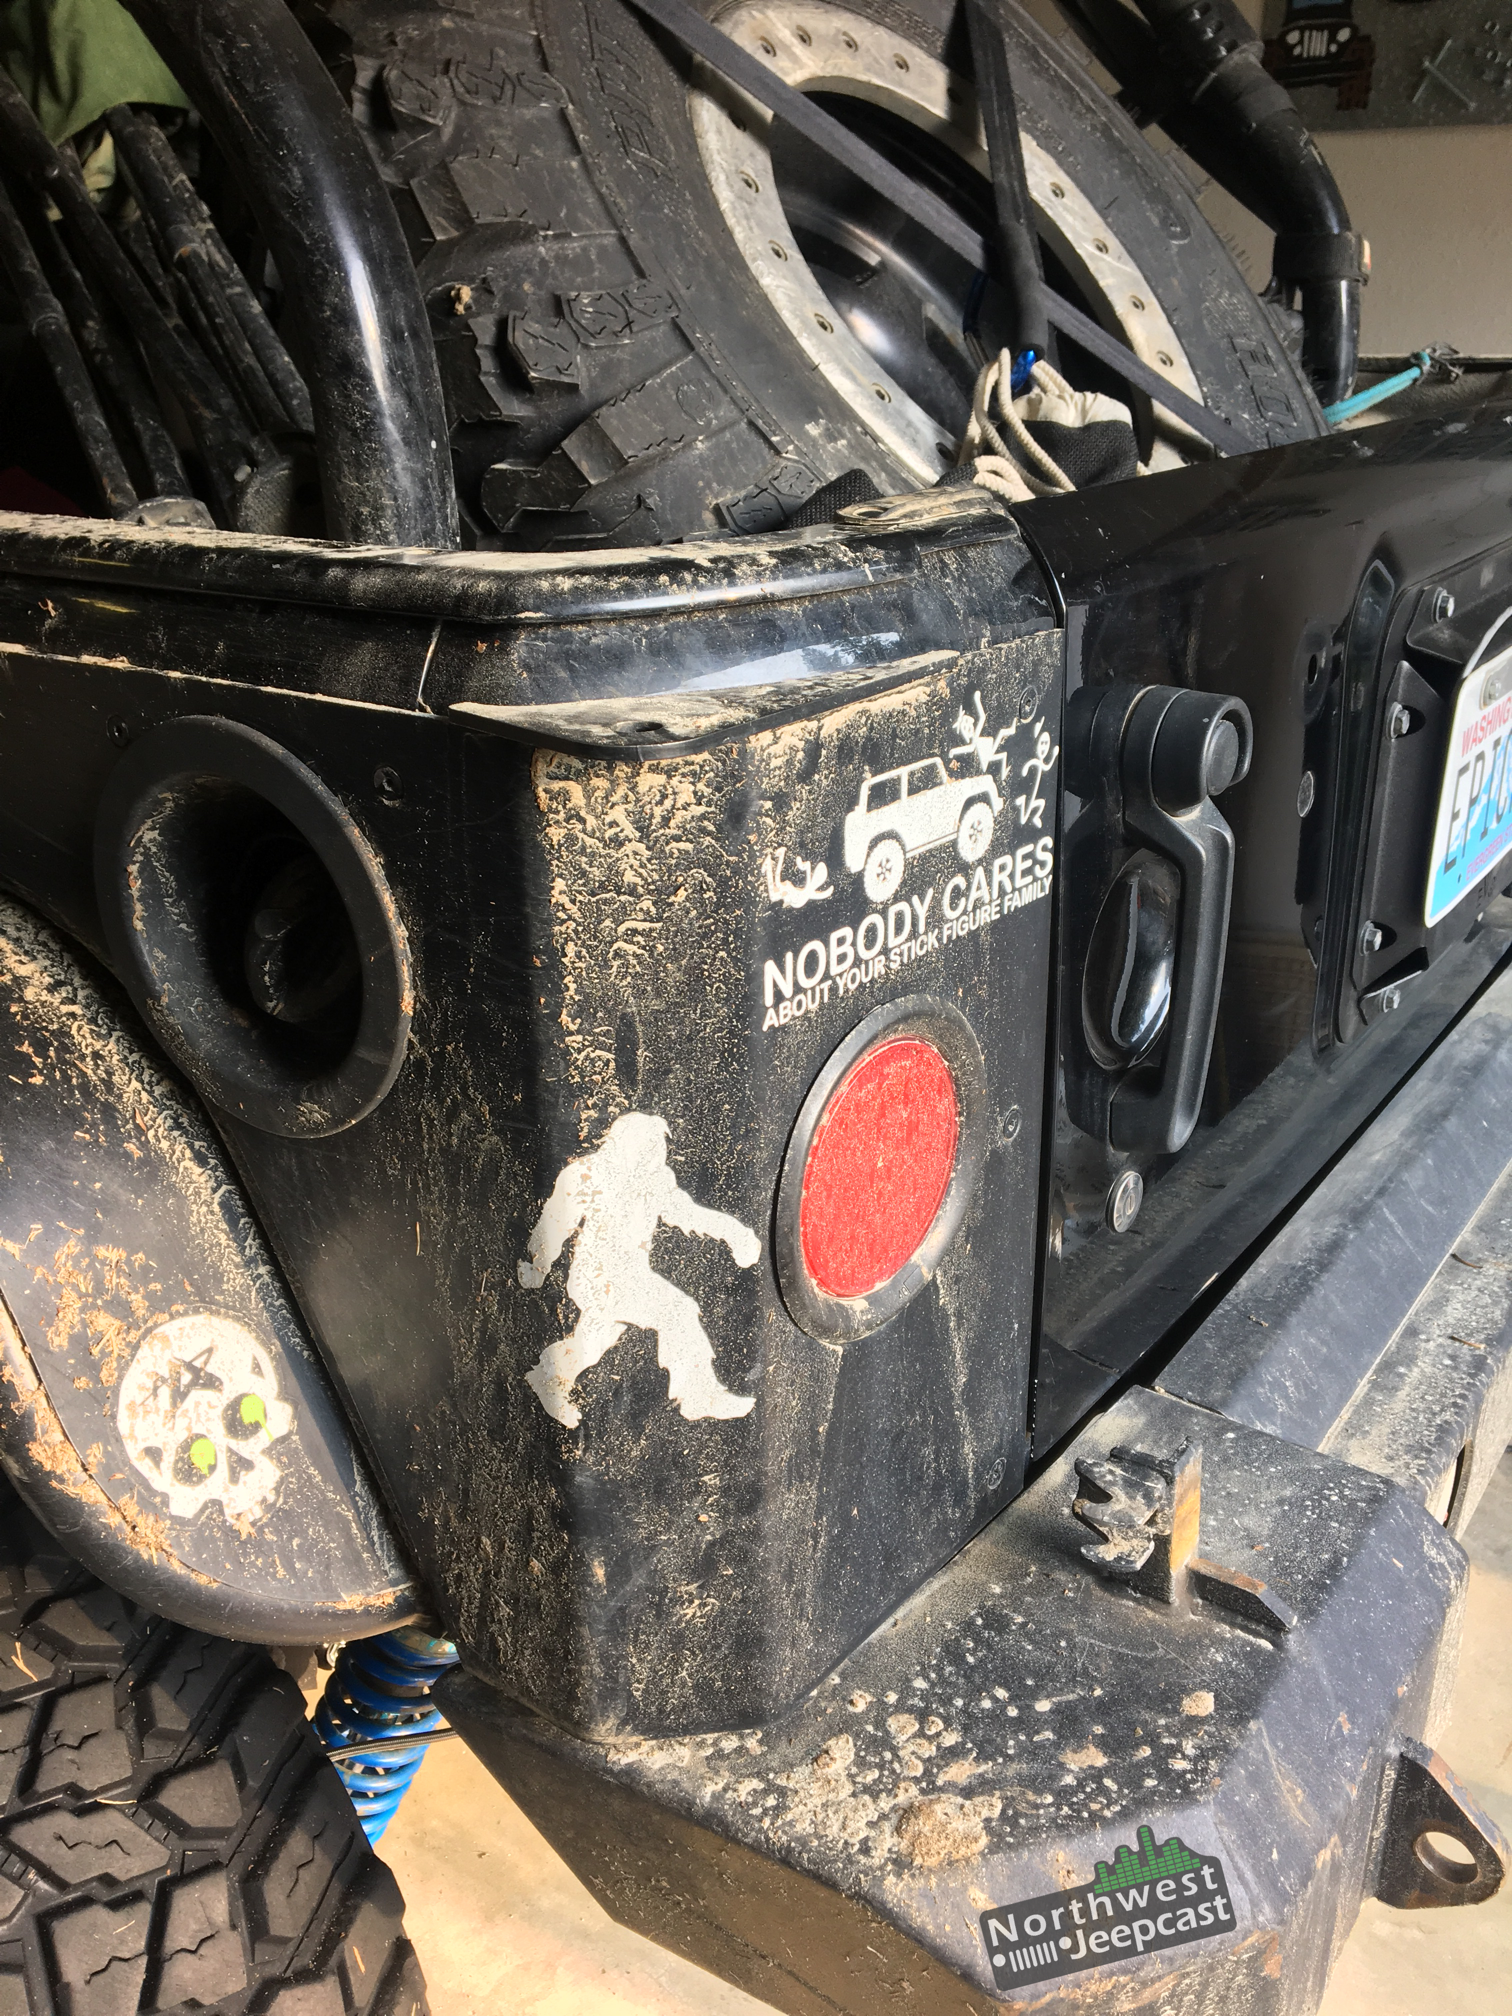 Northwest Jeepcast - Jeep Podcast - EVO HnT rear bumper project